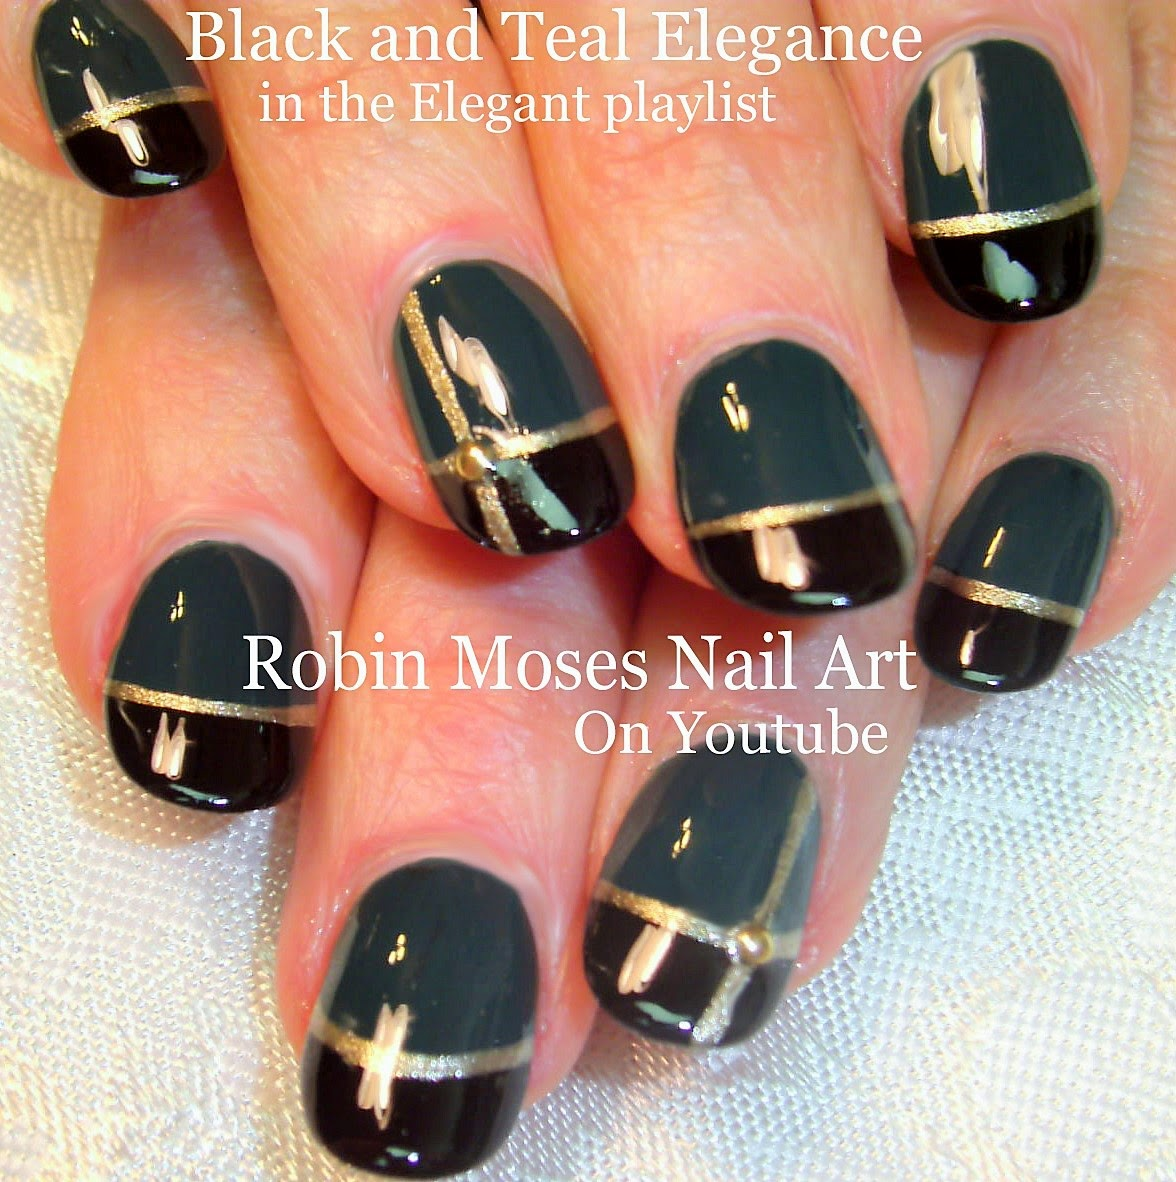 Nail Art By Robin Moses Nail Art Elegant Nail Art Teal Nails